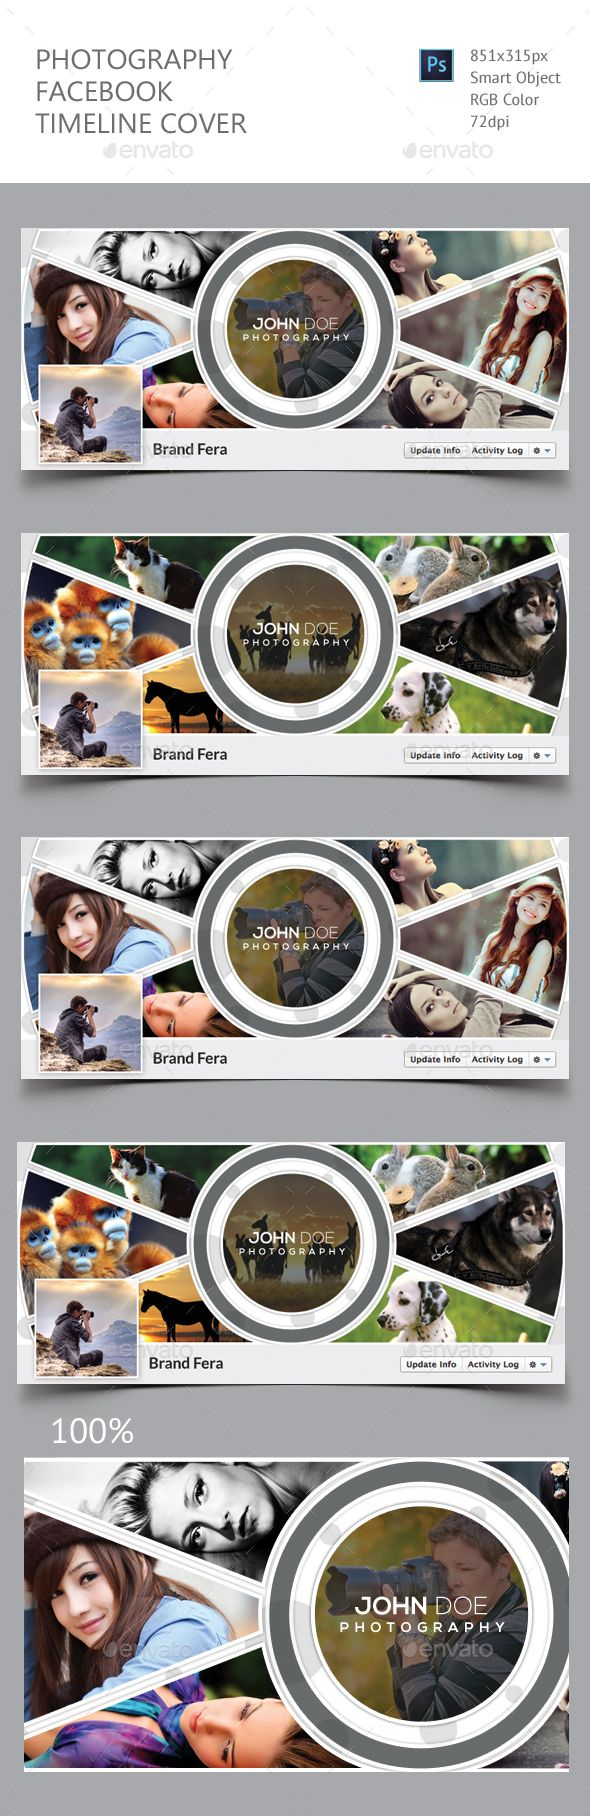 Photography Facebook Timeline Cover Template PSD. Download here: https://graphicriver.net/item/photography-facebook-timeline-cover/17443863?ref=ksioks